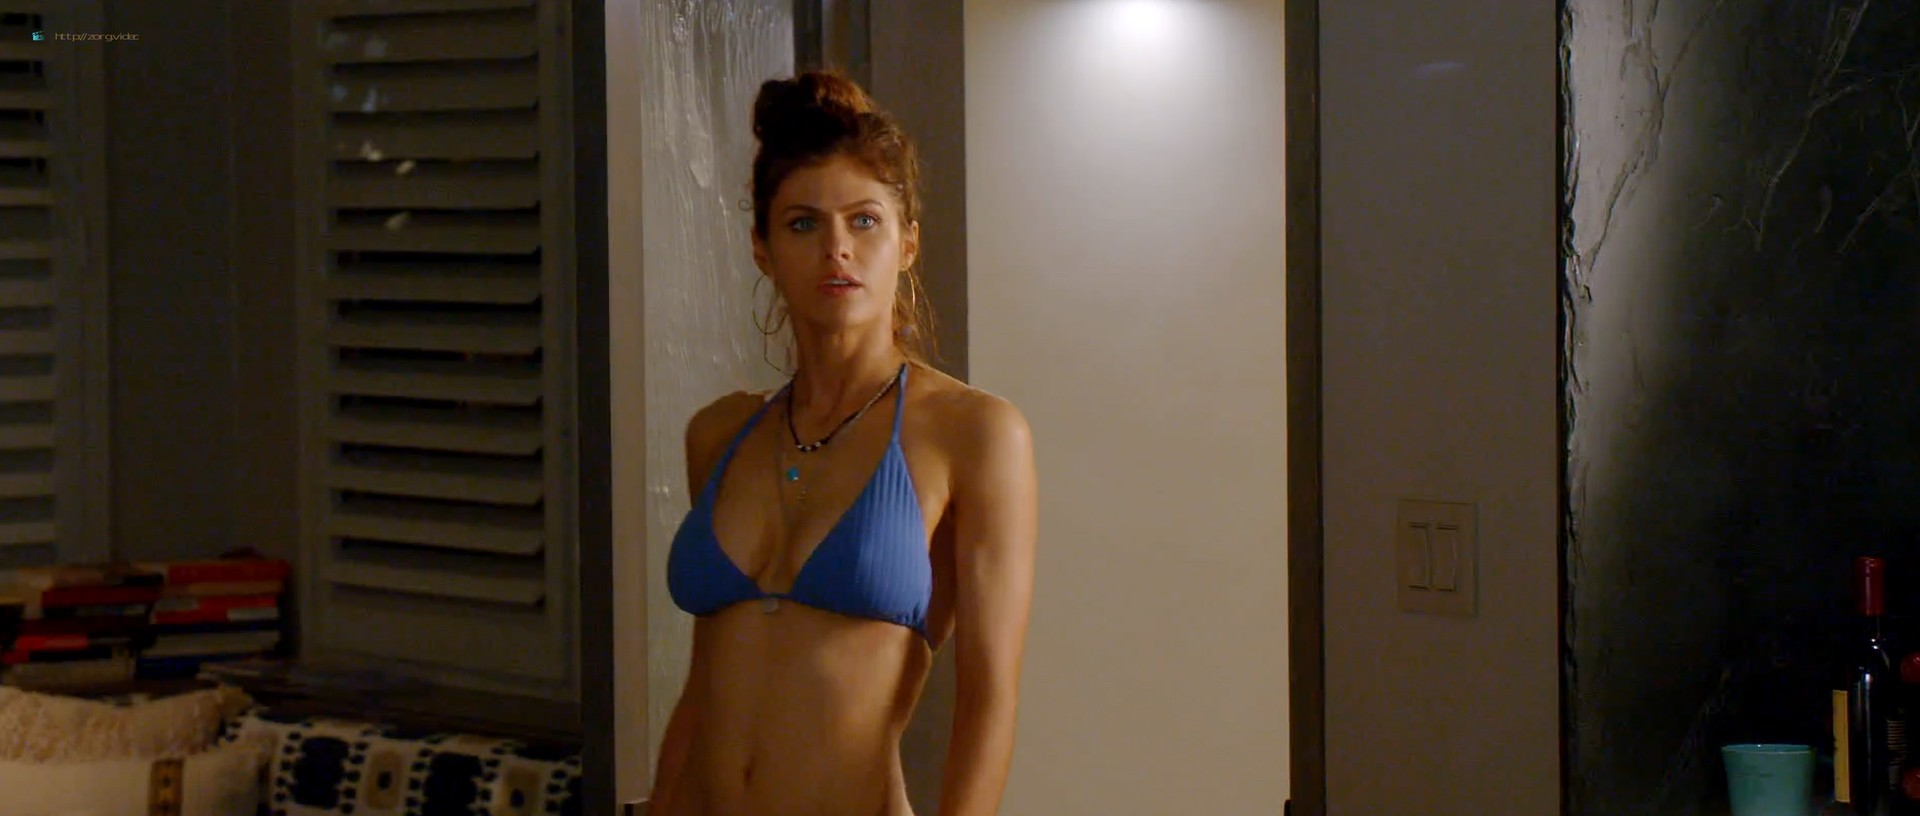 Alexandra Daddario hot busty in a bikini - Why Women Kill (2019) s1e1 HD 1080p Web (3)